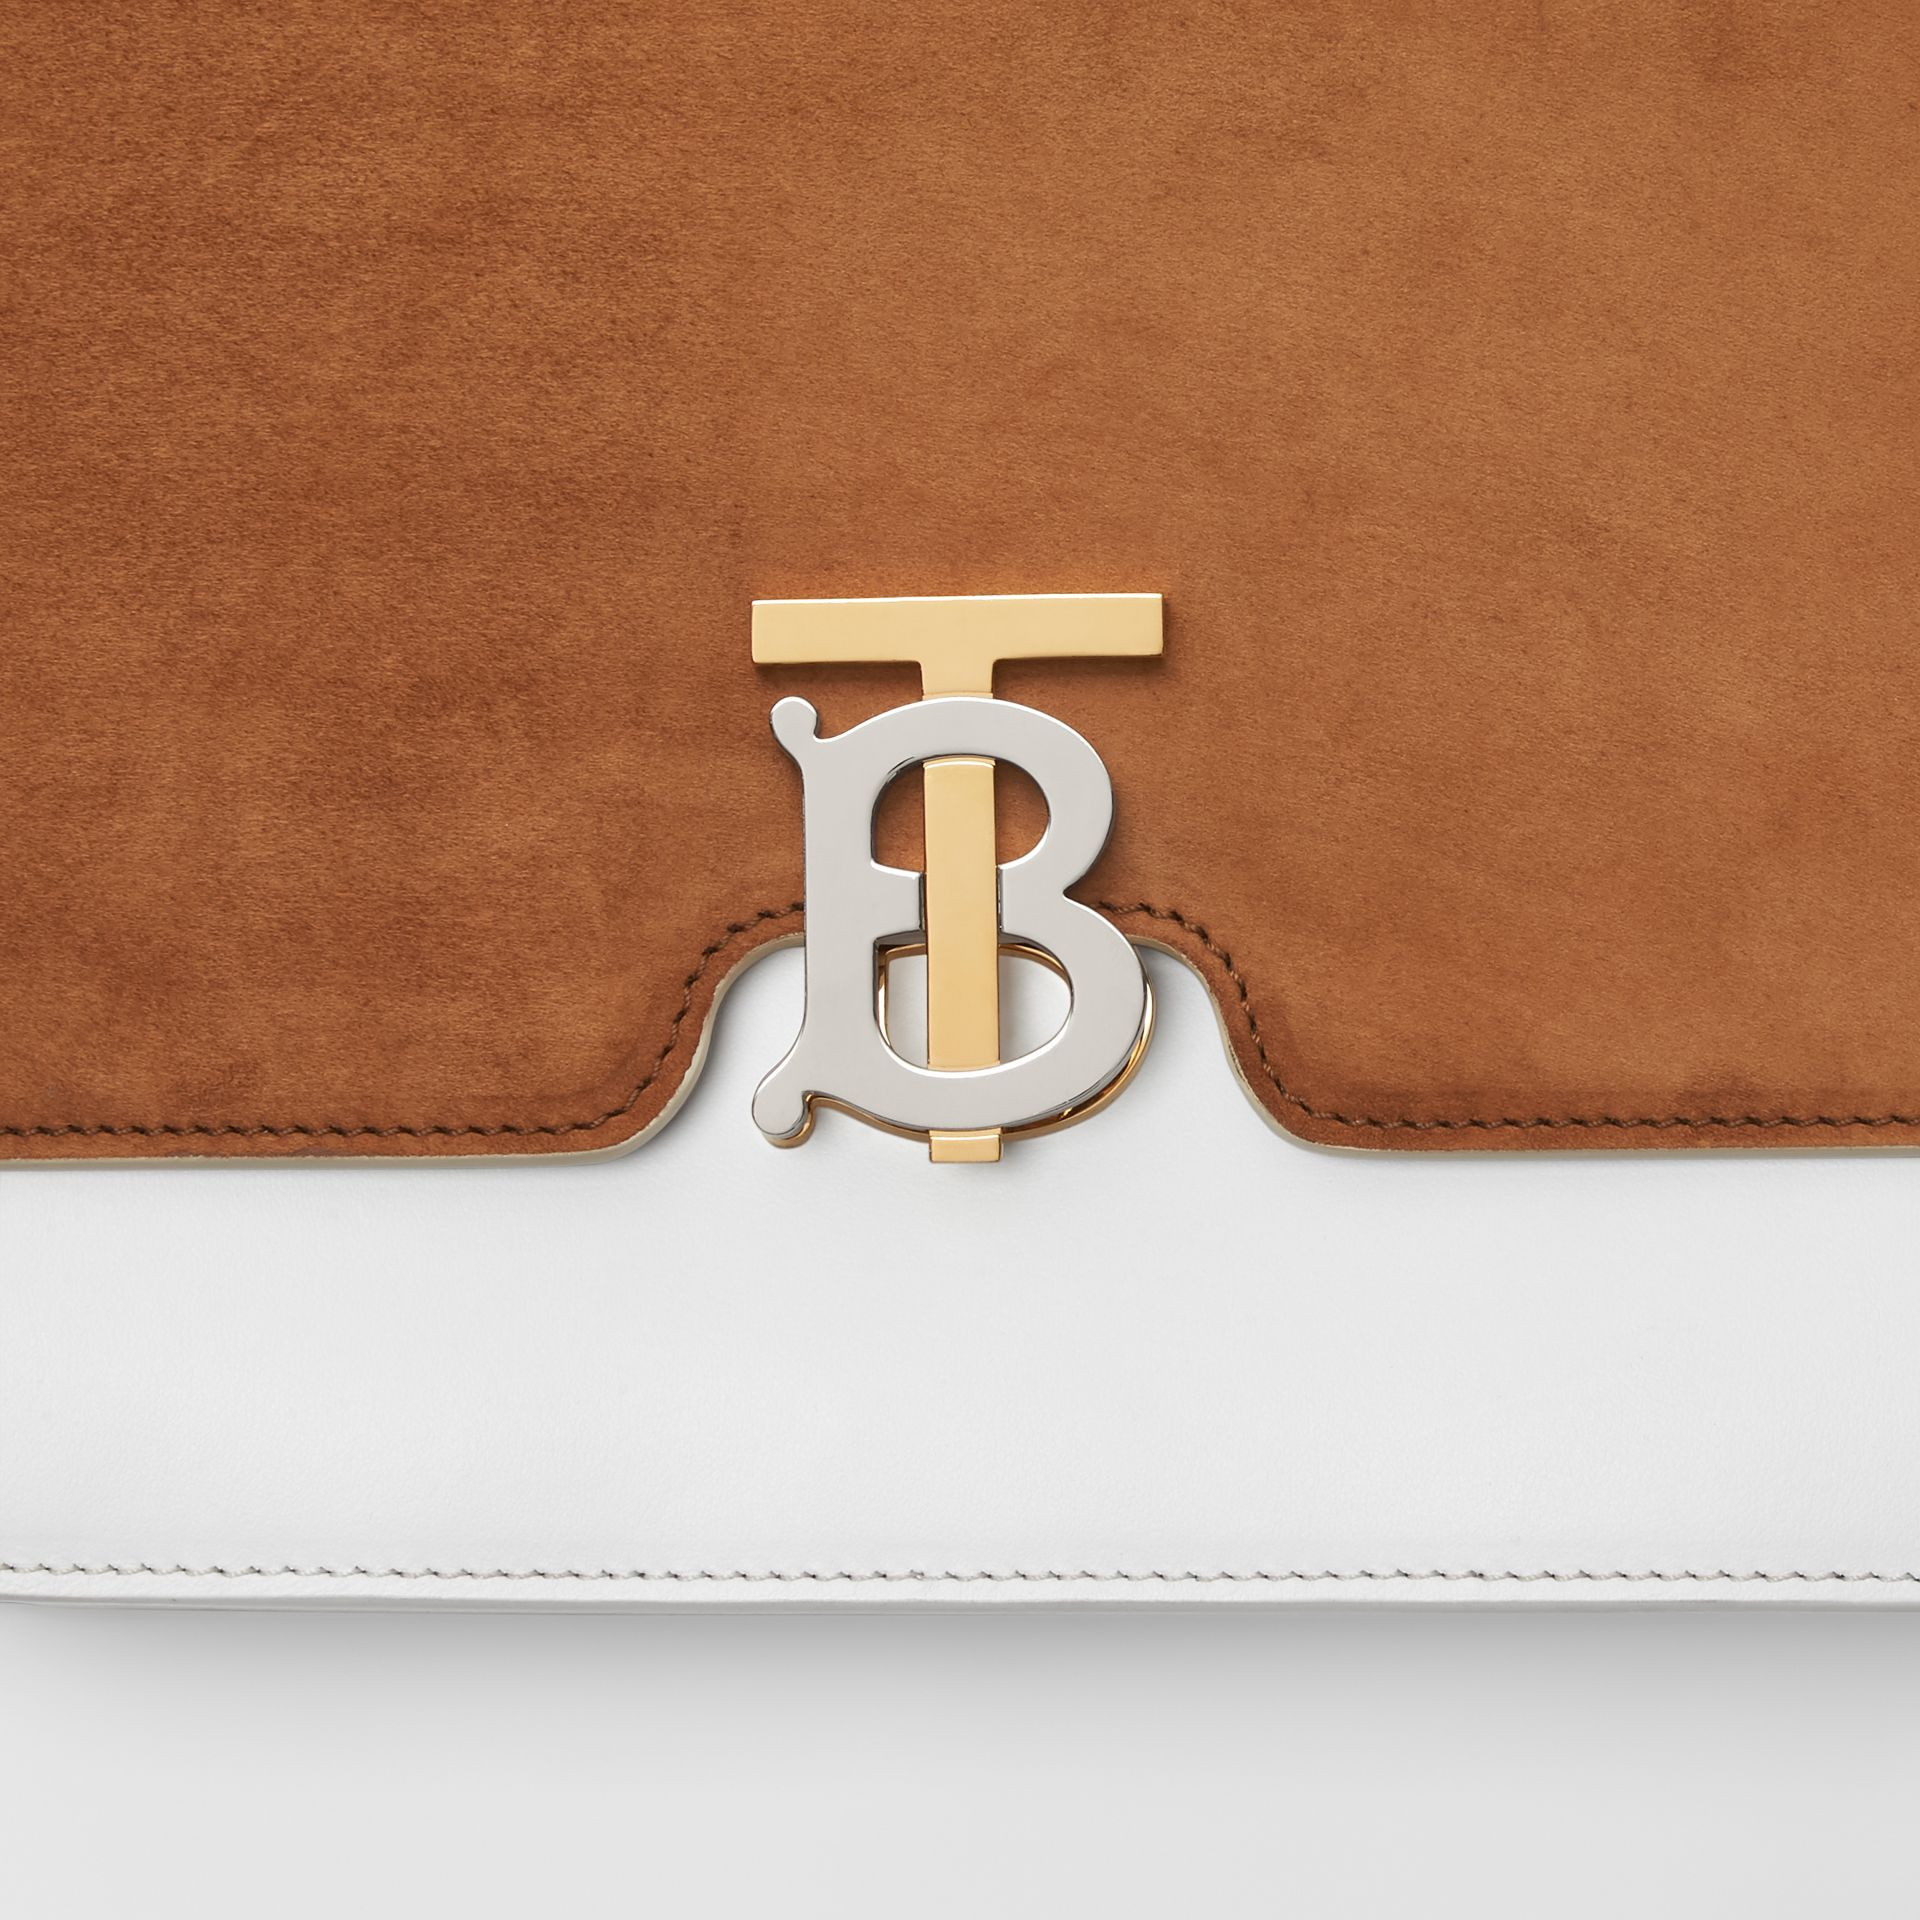 Medium Two-tone Leather and Suede TB Bag in White/brown - Women | Burberry - gallery image 1